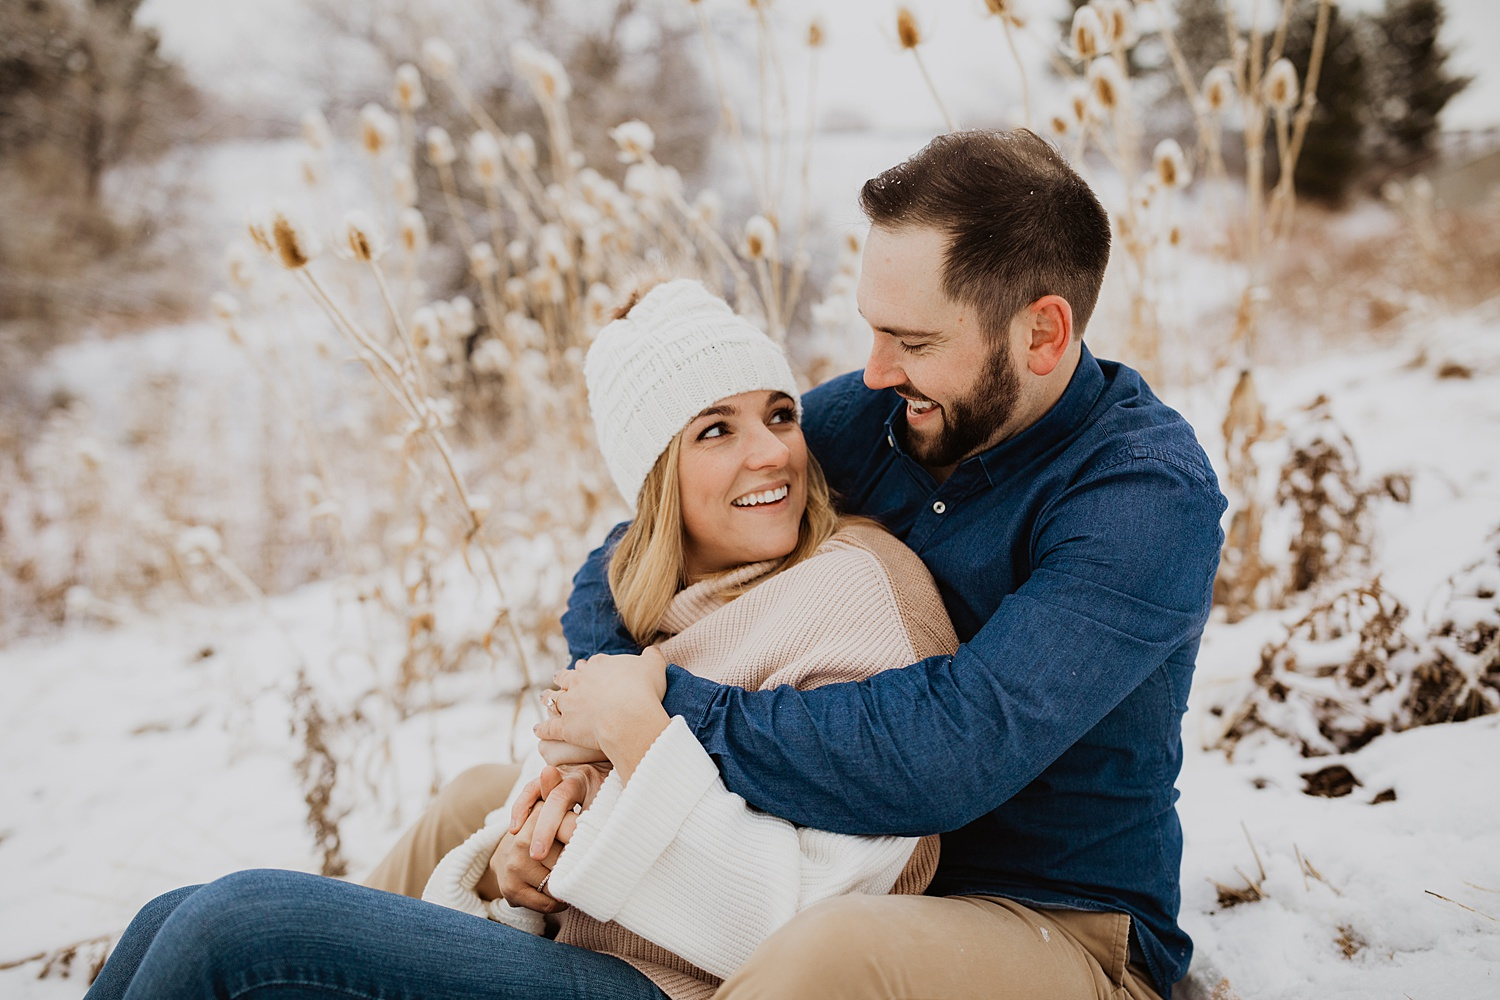 Snow Engagement Photos | Winter Engagement Outfits | Colorado Winter Engagement Photos | Engagement Photos with Kids | Cassie Madden Photography